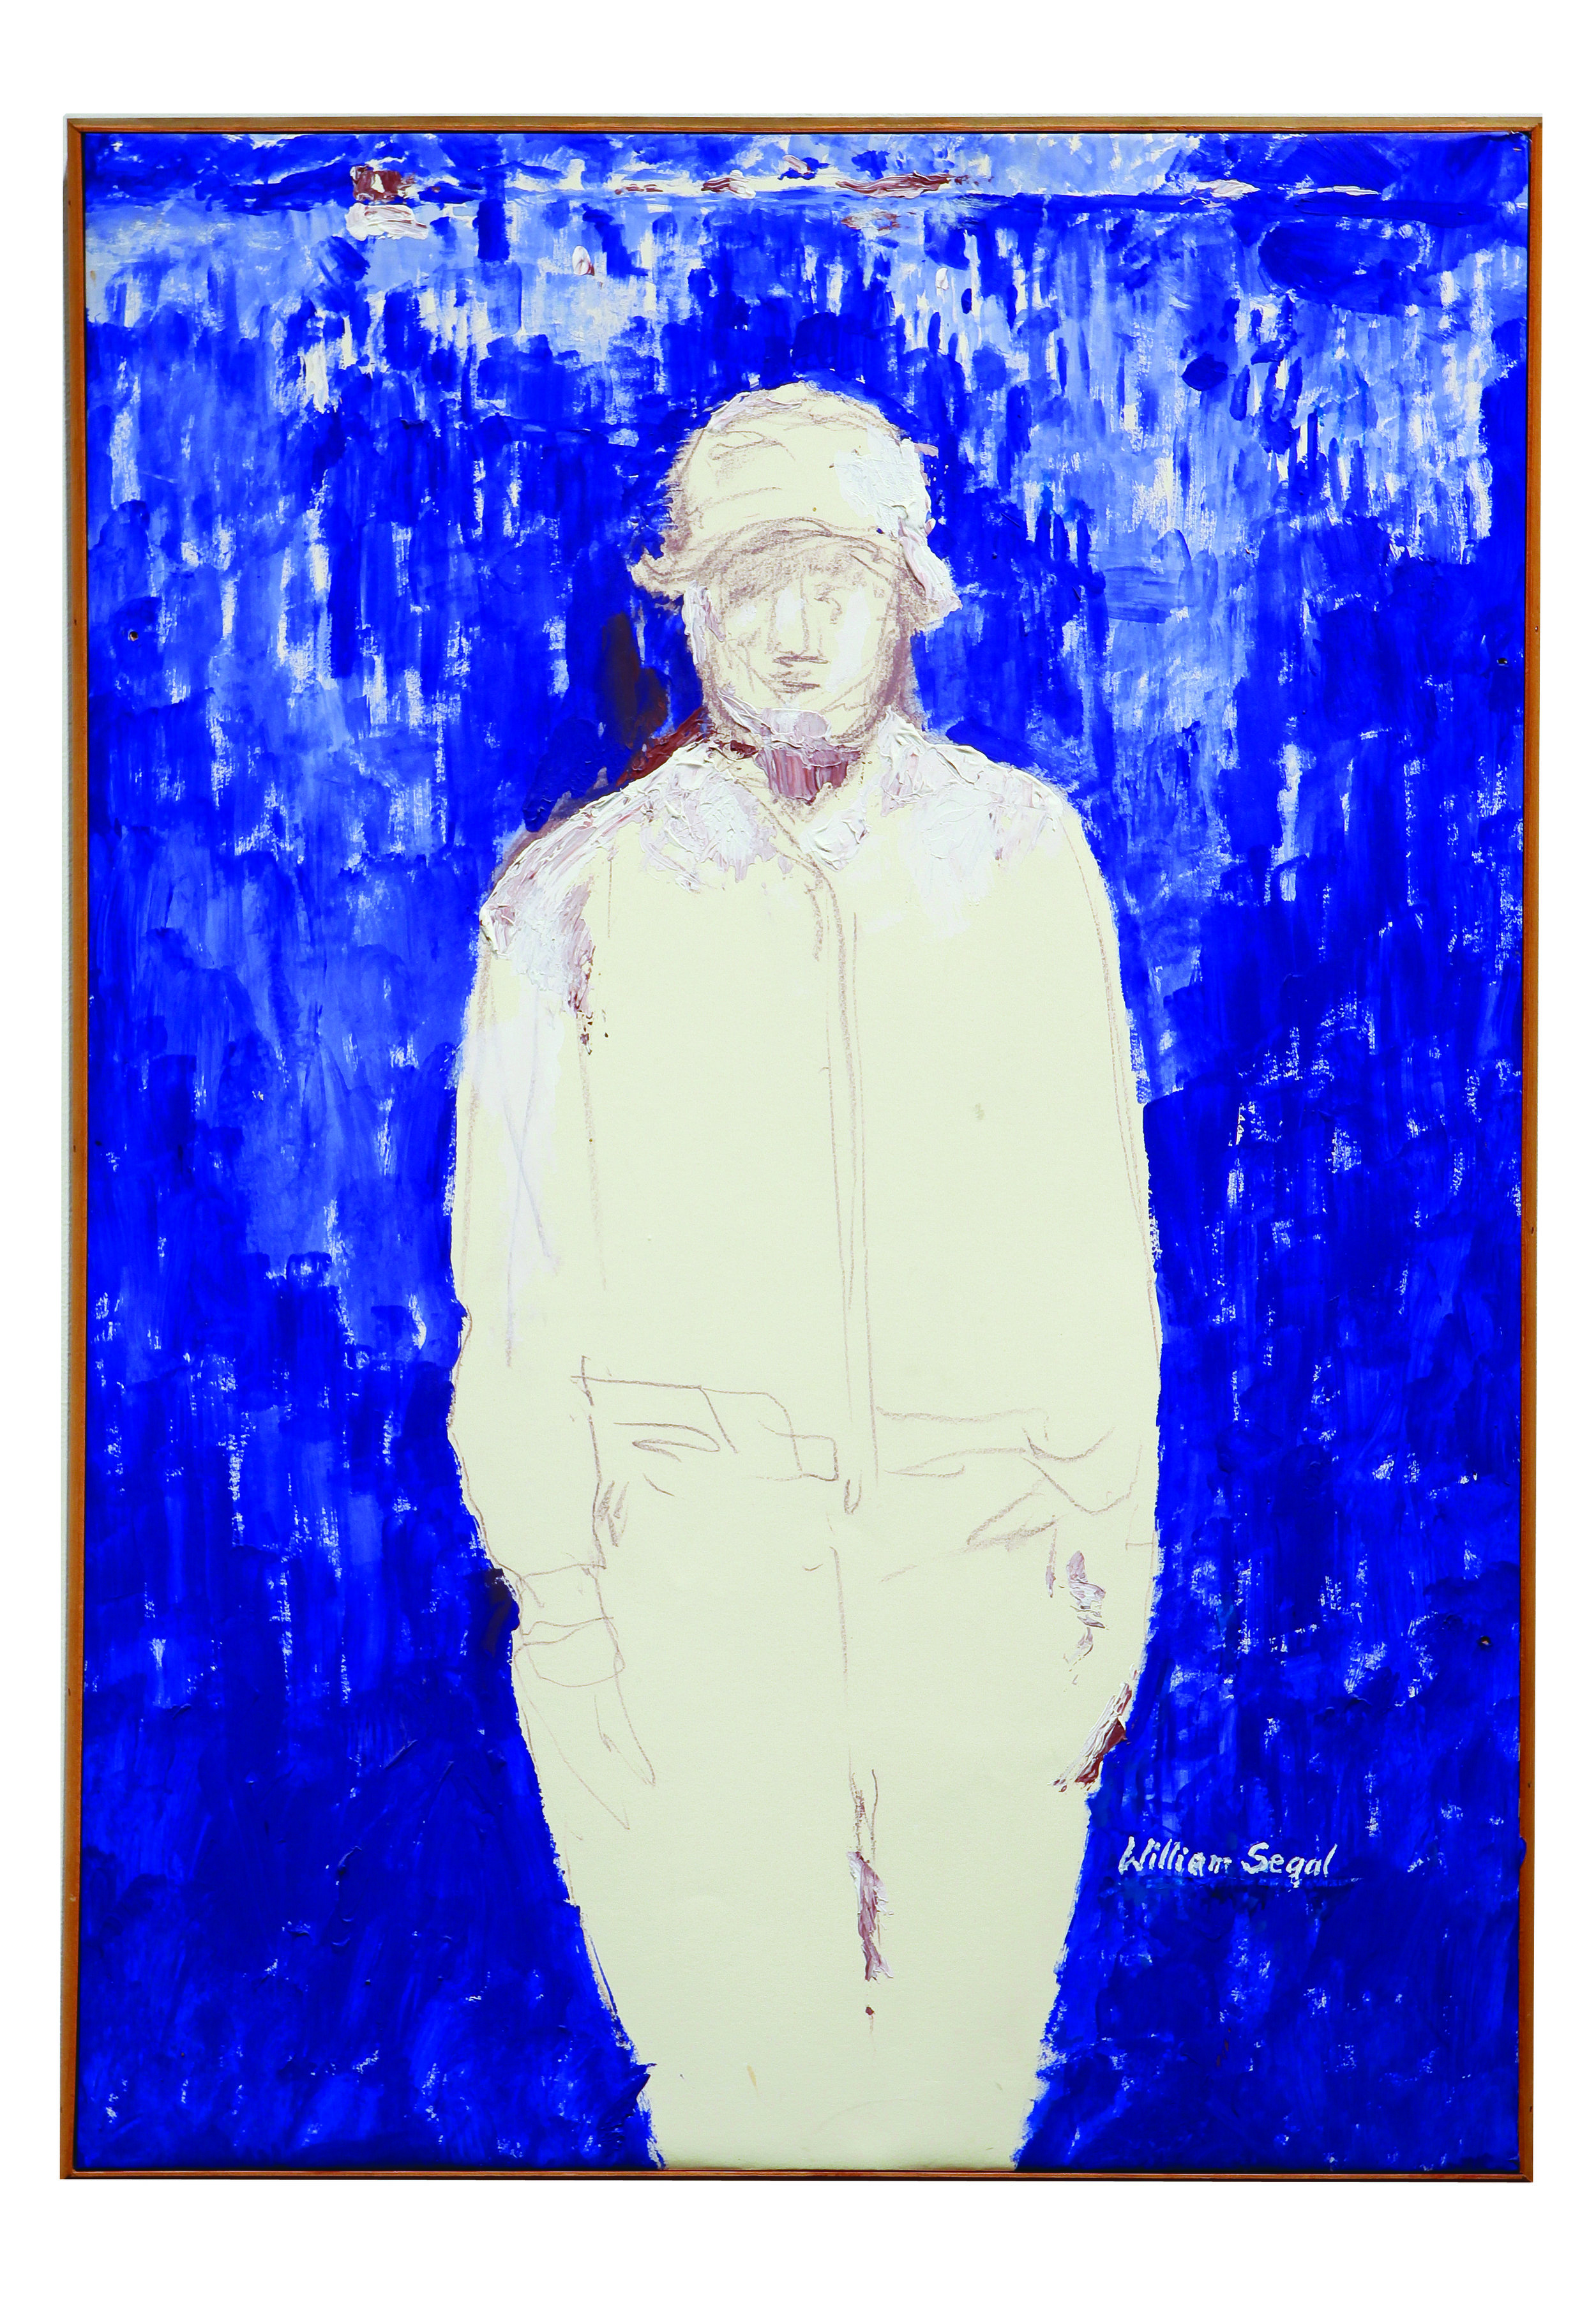 """[Image Description: A rectangular painting features a standing figure from the knee up, rendered in white with faint lines indicating the general shape of their face and outline of their clothing. The figure stands against a cobalt blue background that is painted densely at the bottom, but fades towards the top, allowing for the white background of the canvas to show through the brushstrokes. On the bottom right of the image, close to the figure's thigh is the name """"William Segal"""" painted in white.]"""